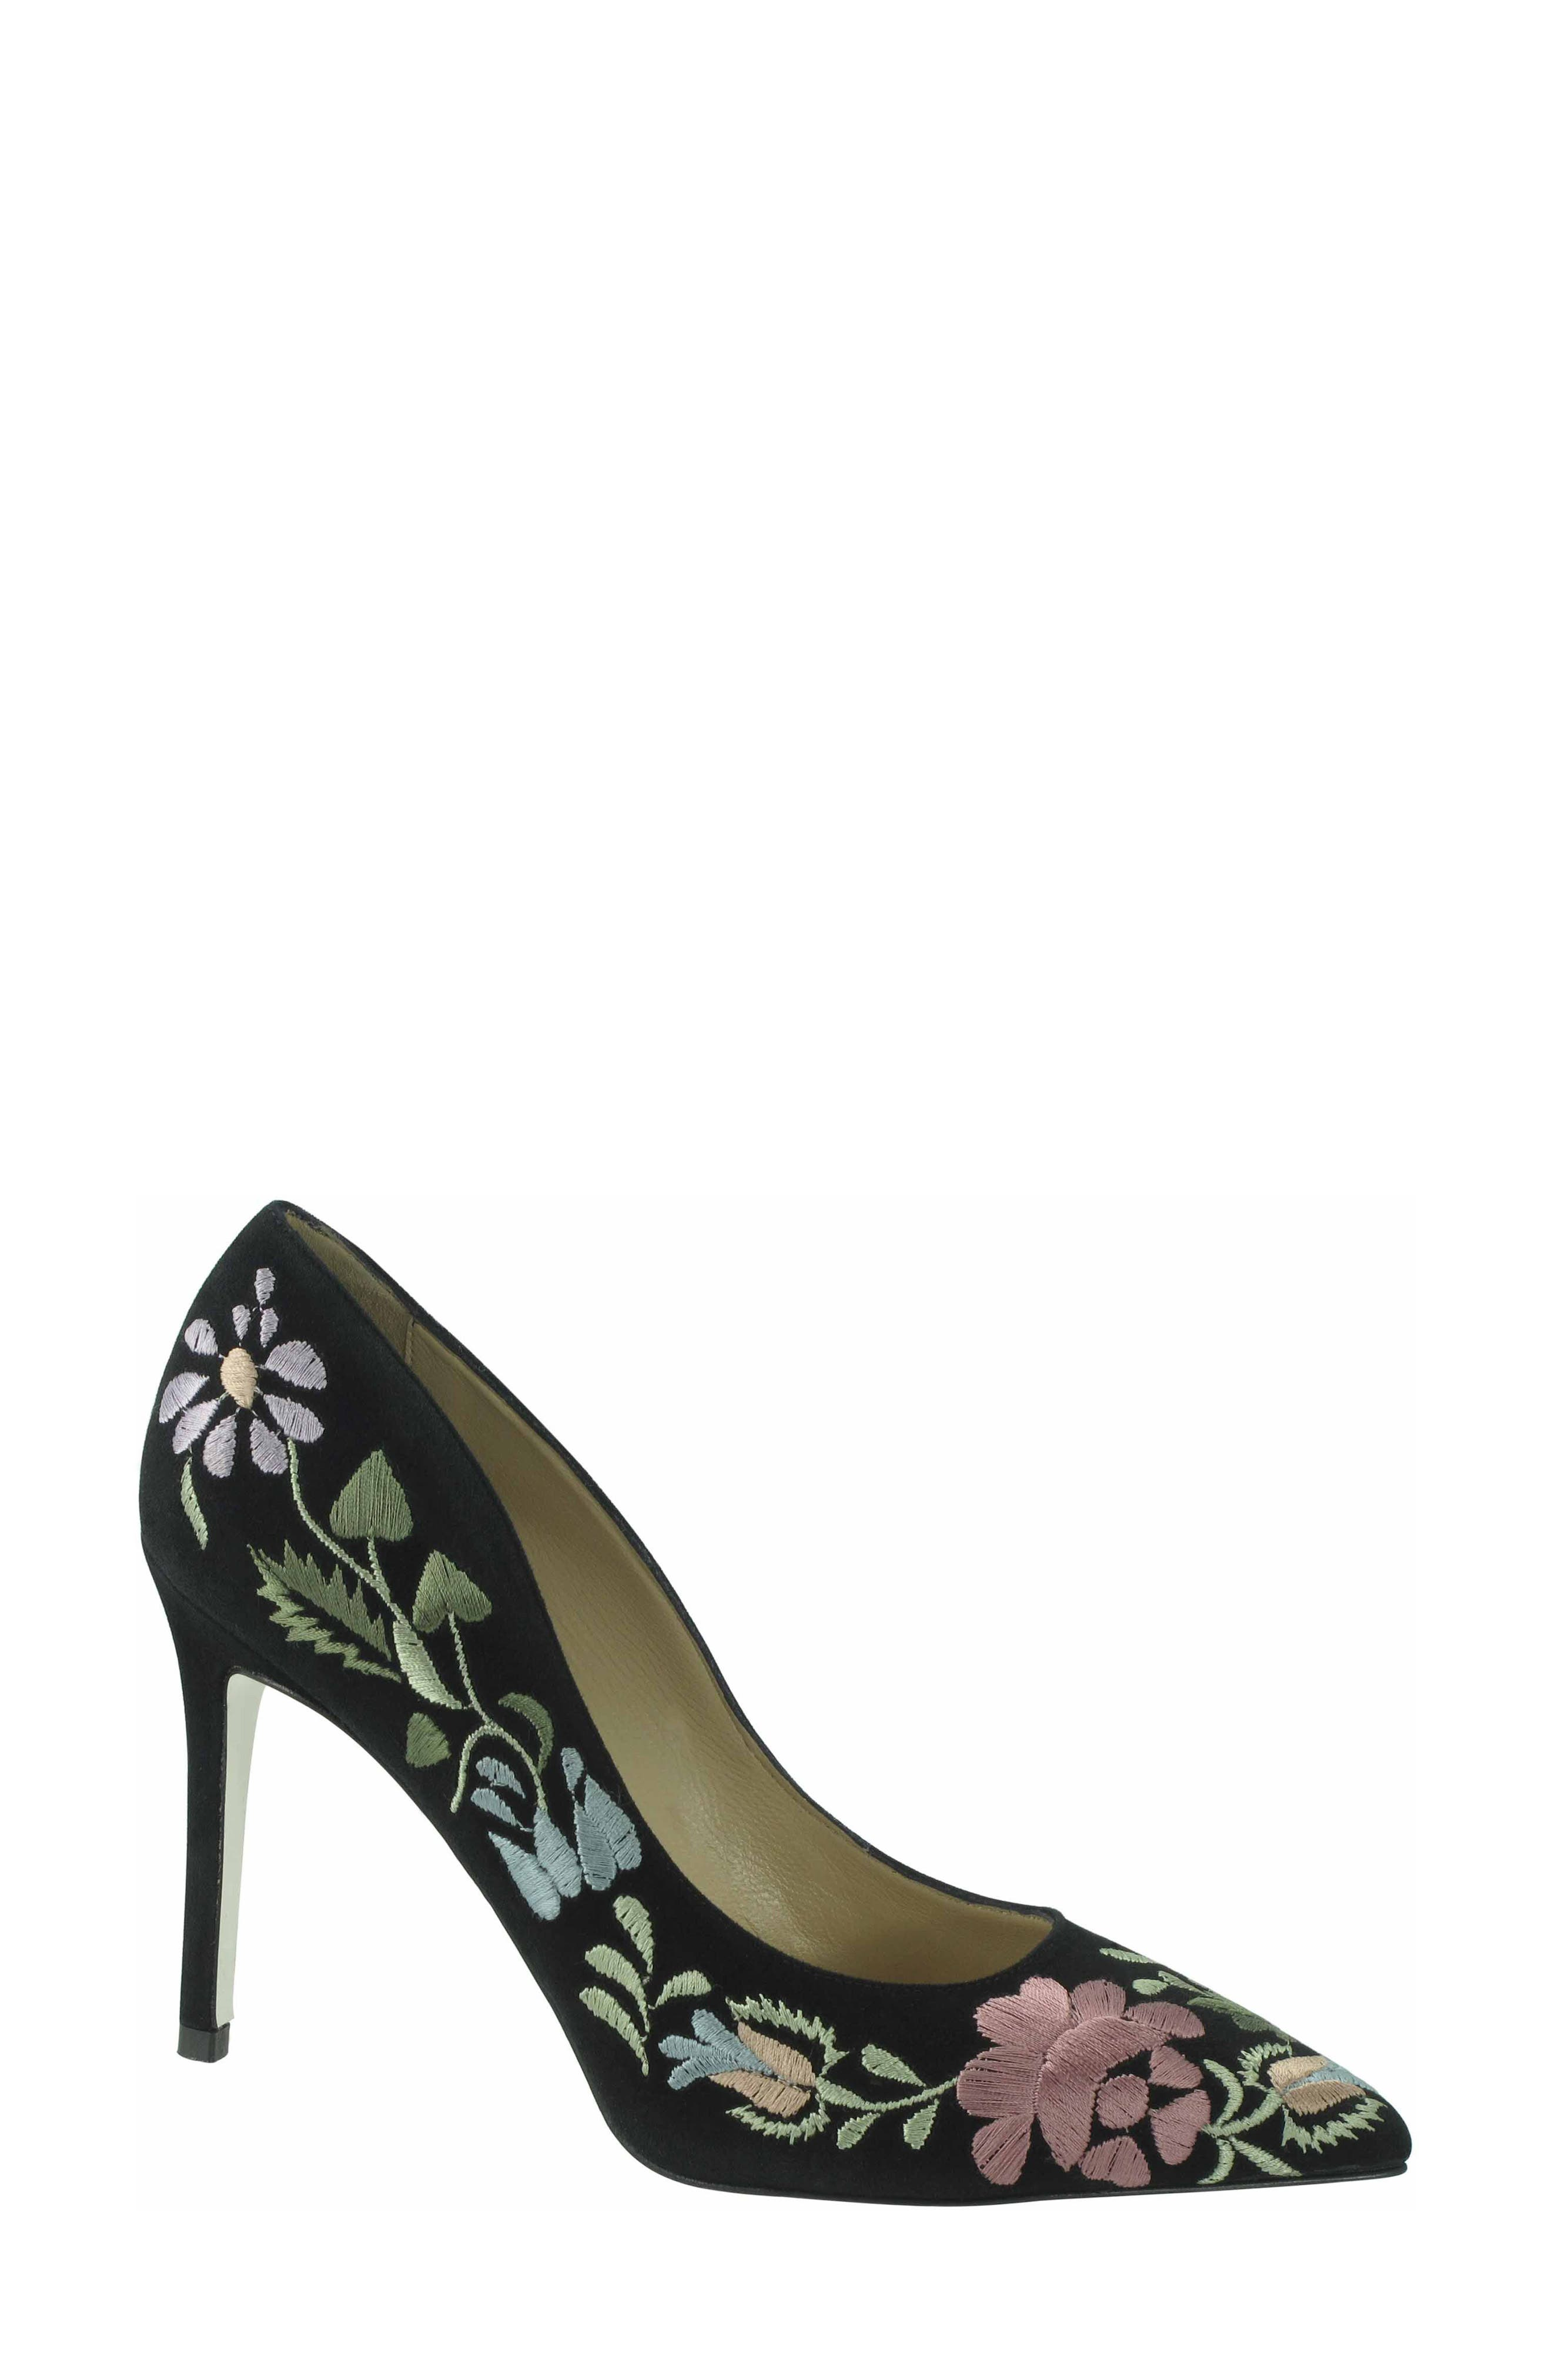 Shana Flower Embroidered Pump,                         Main,                         color, Onyx Multi Suede